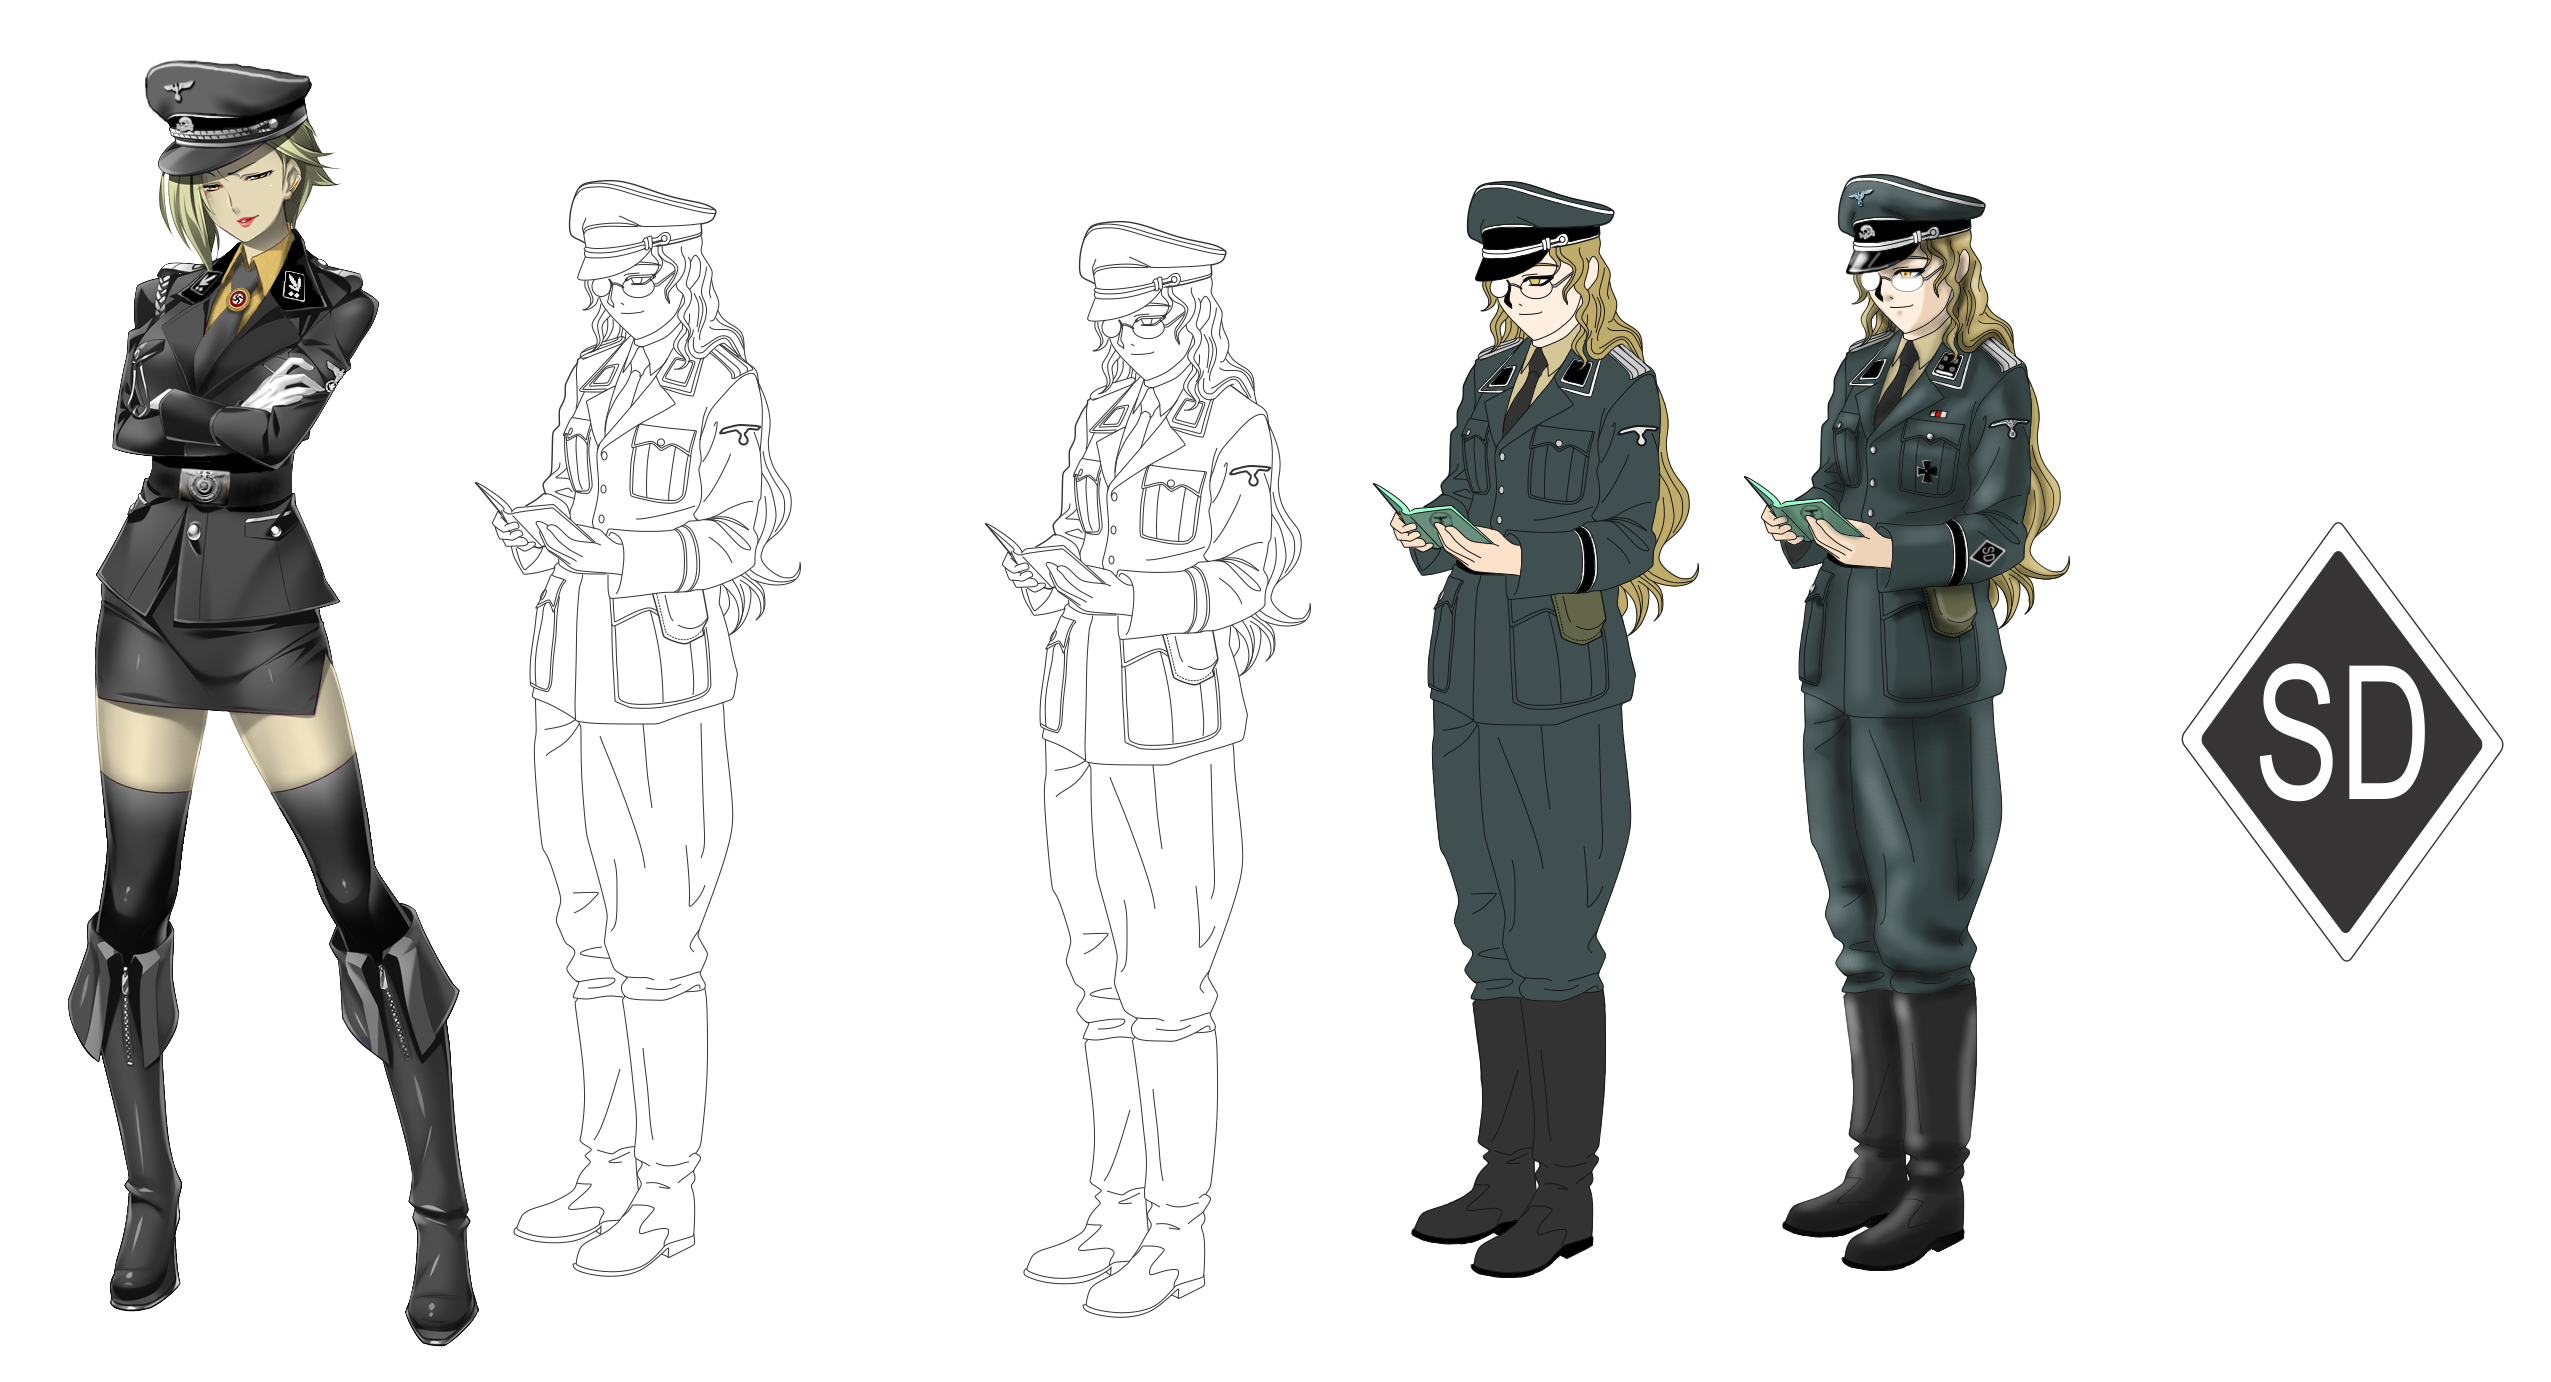 Nazi soldiers color png. Anime sd officer extra